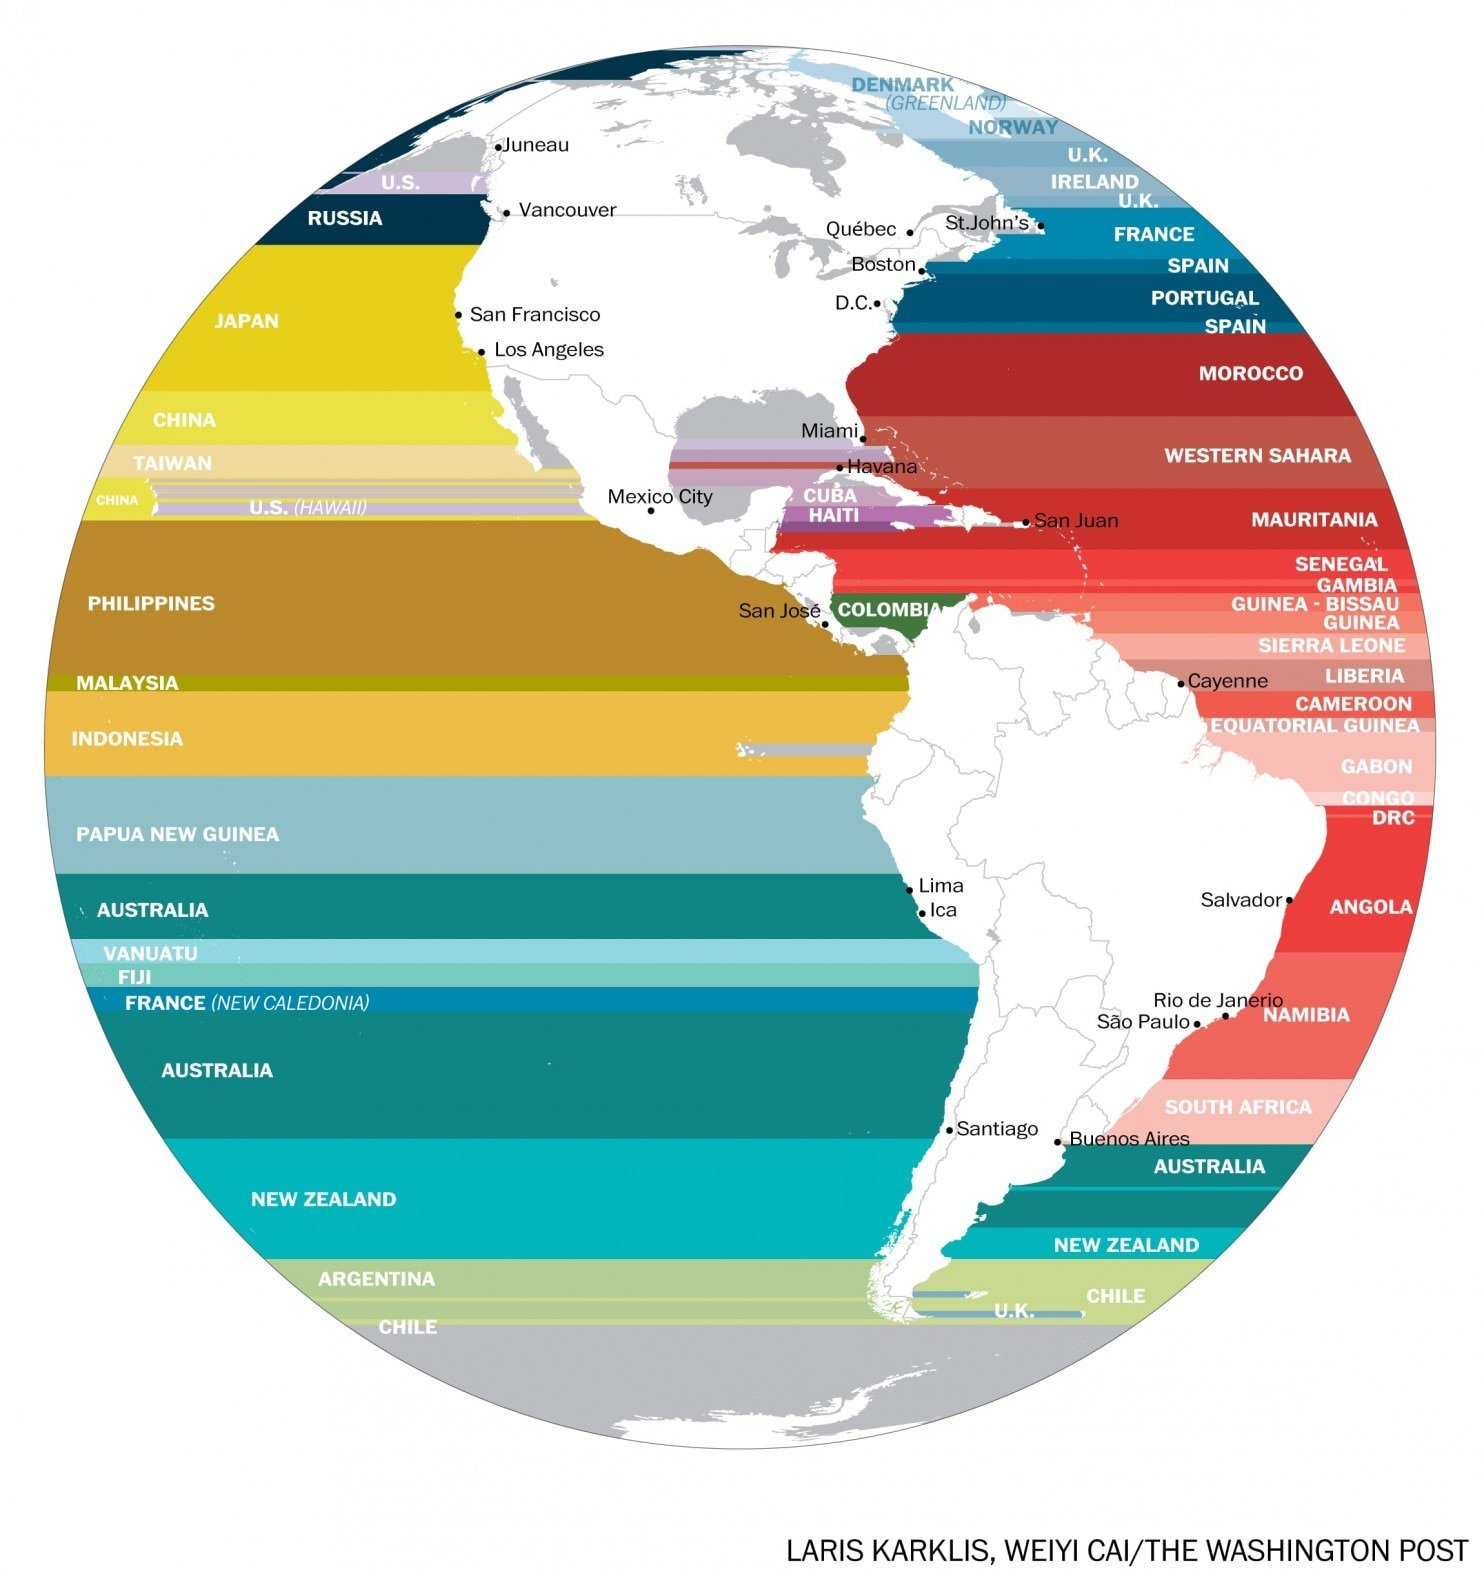 What country is across the ocean? https://t.co/Cfec2uQVOQ